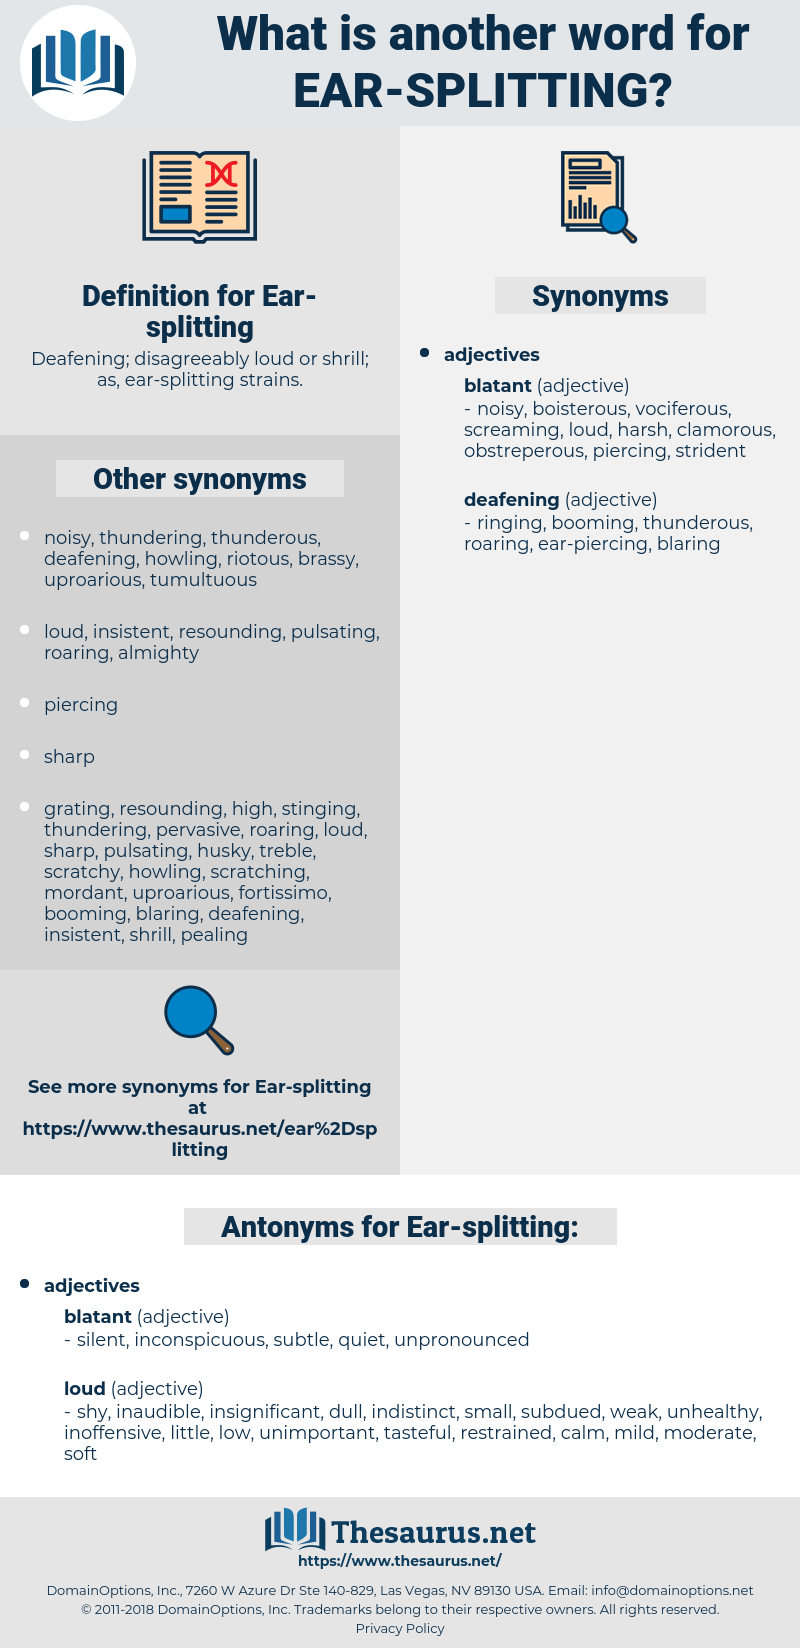 Ear-splitting, synonym Ear-splitting, another word for Ear-splitting, words like Ear-splitting, thesaurus Ear-splitting